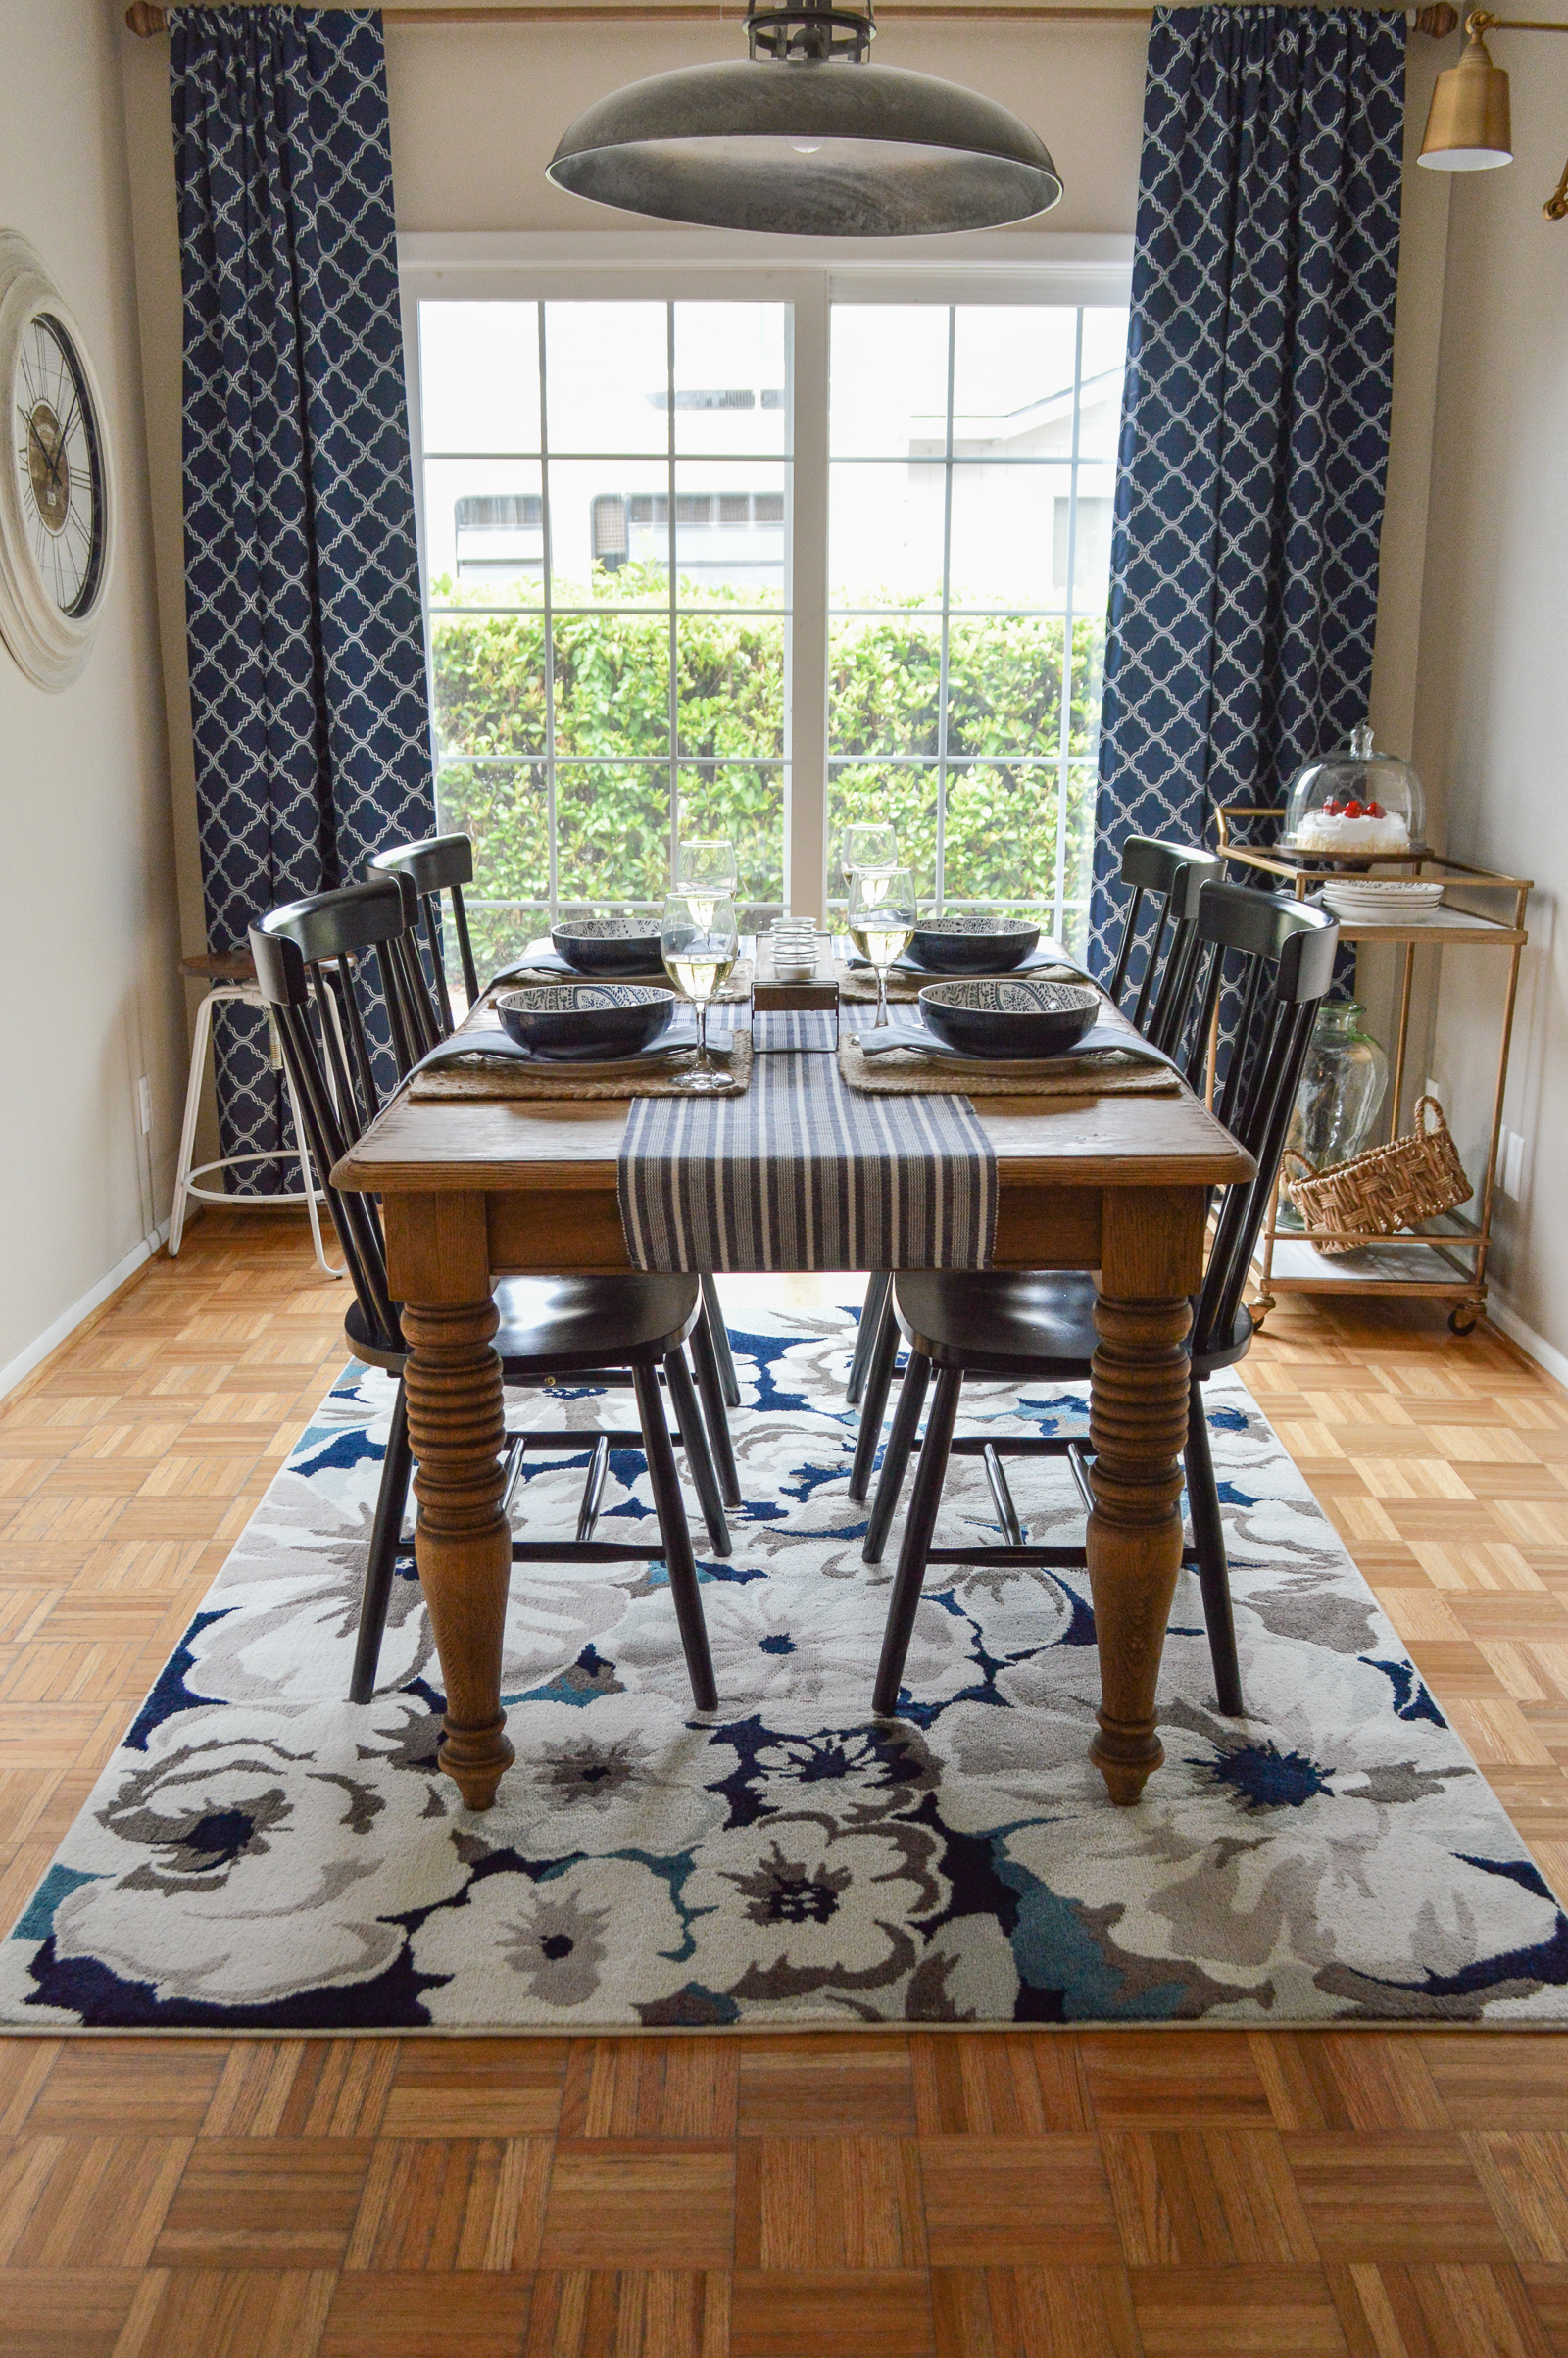 Small Space Dining Room Decorating Ideas, Before & After Makeover with Better Homes & Gardens from Walmart at foxhollowcottage.com #sponsored | Farm table, blue dishes, blue drapes curtains